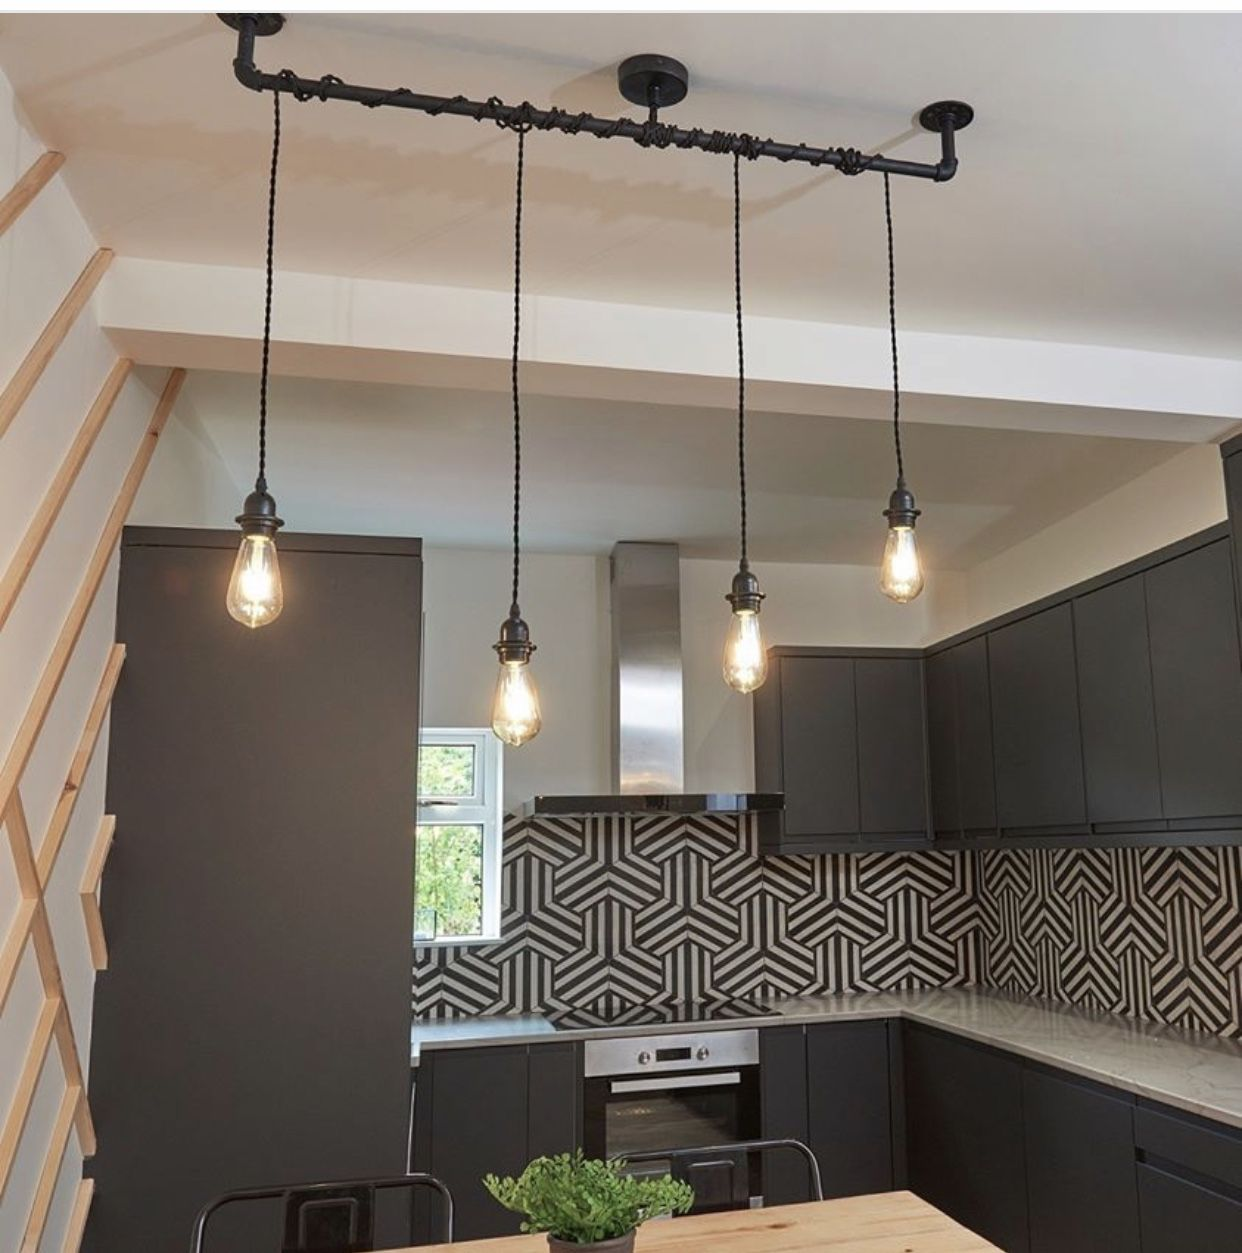 Pin By Angela Dubou On Home Inspo Kitchen Lighting Kitchen Lighting Fixtures Kitchen Island Pendants